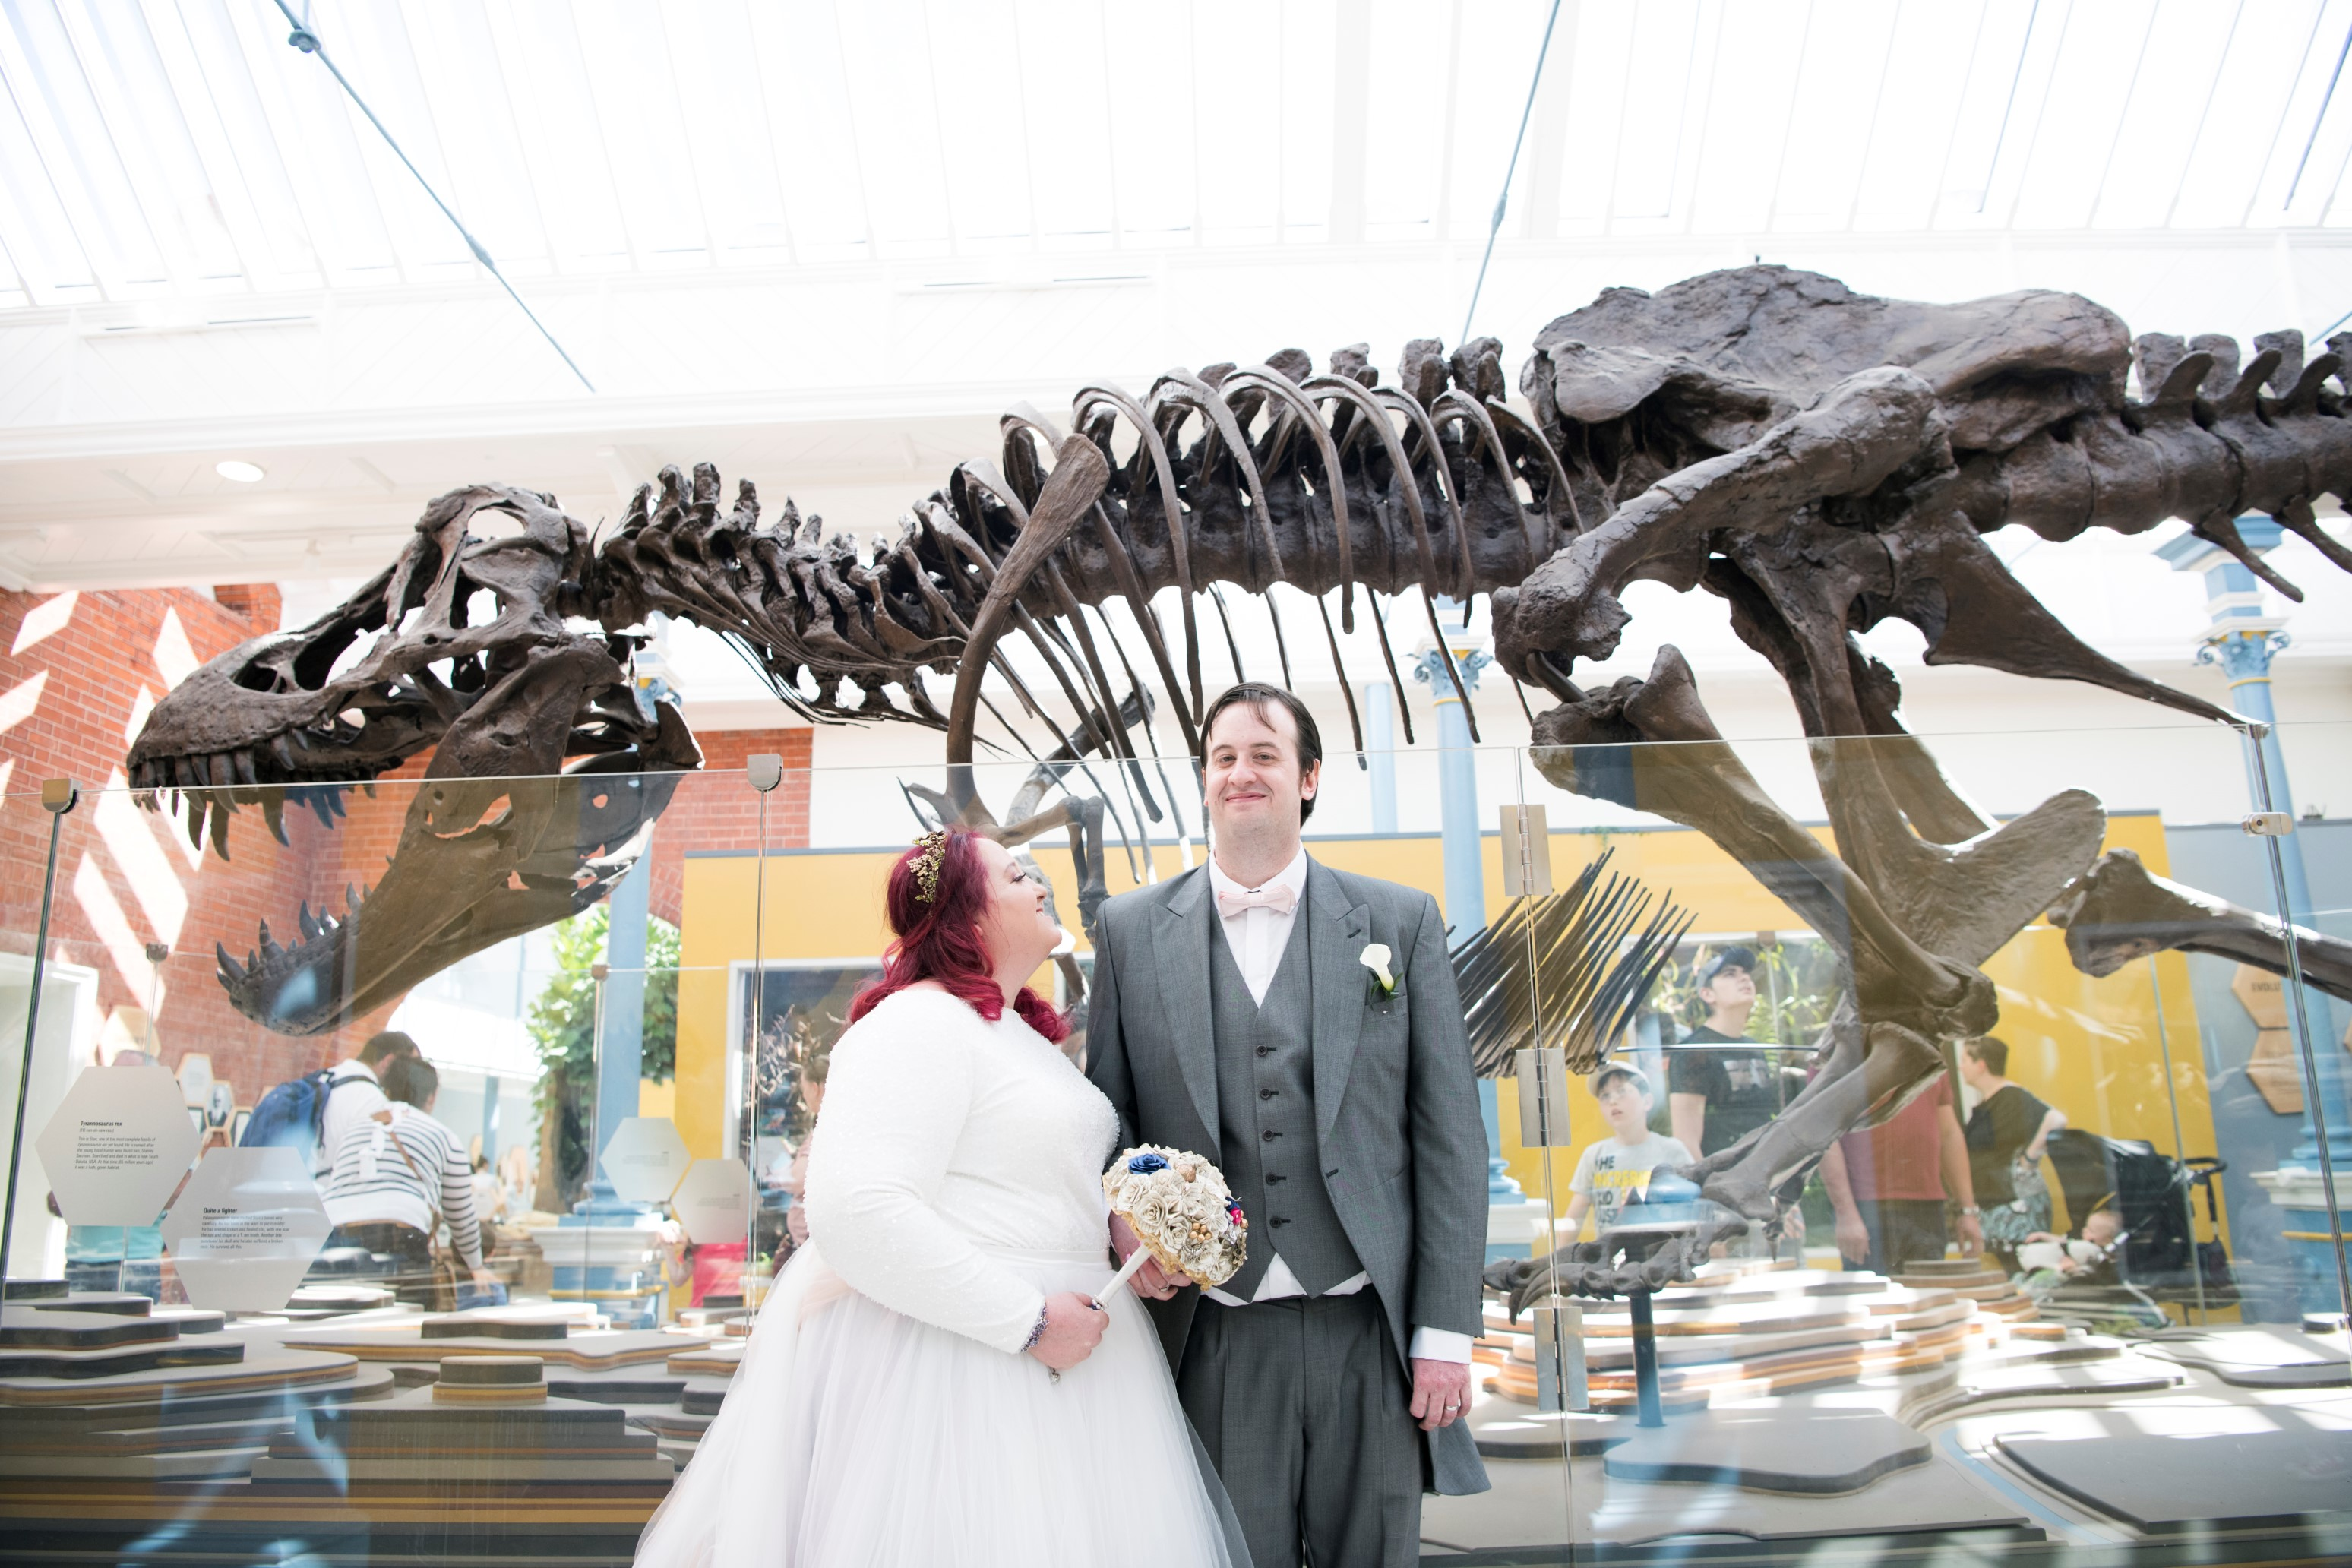 Zoo Wedding- Emma May Photography- Unconventional Wedding- Unique Wedding Inspiration 11